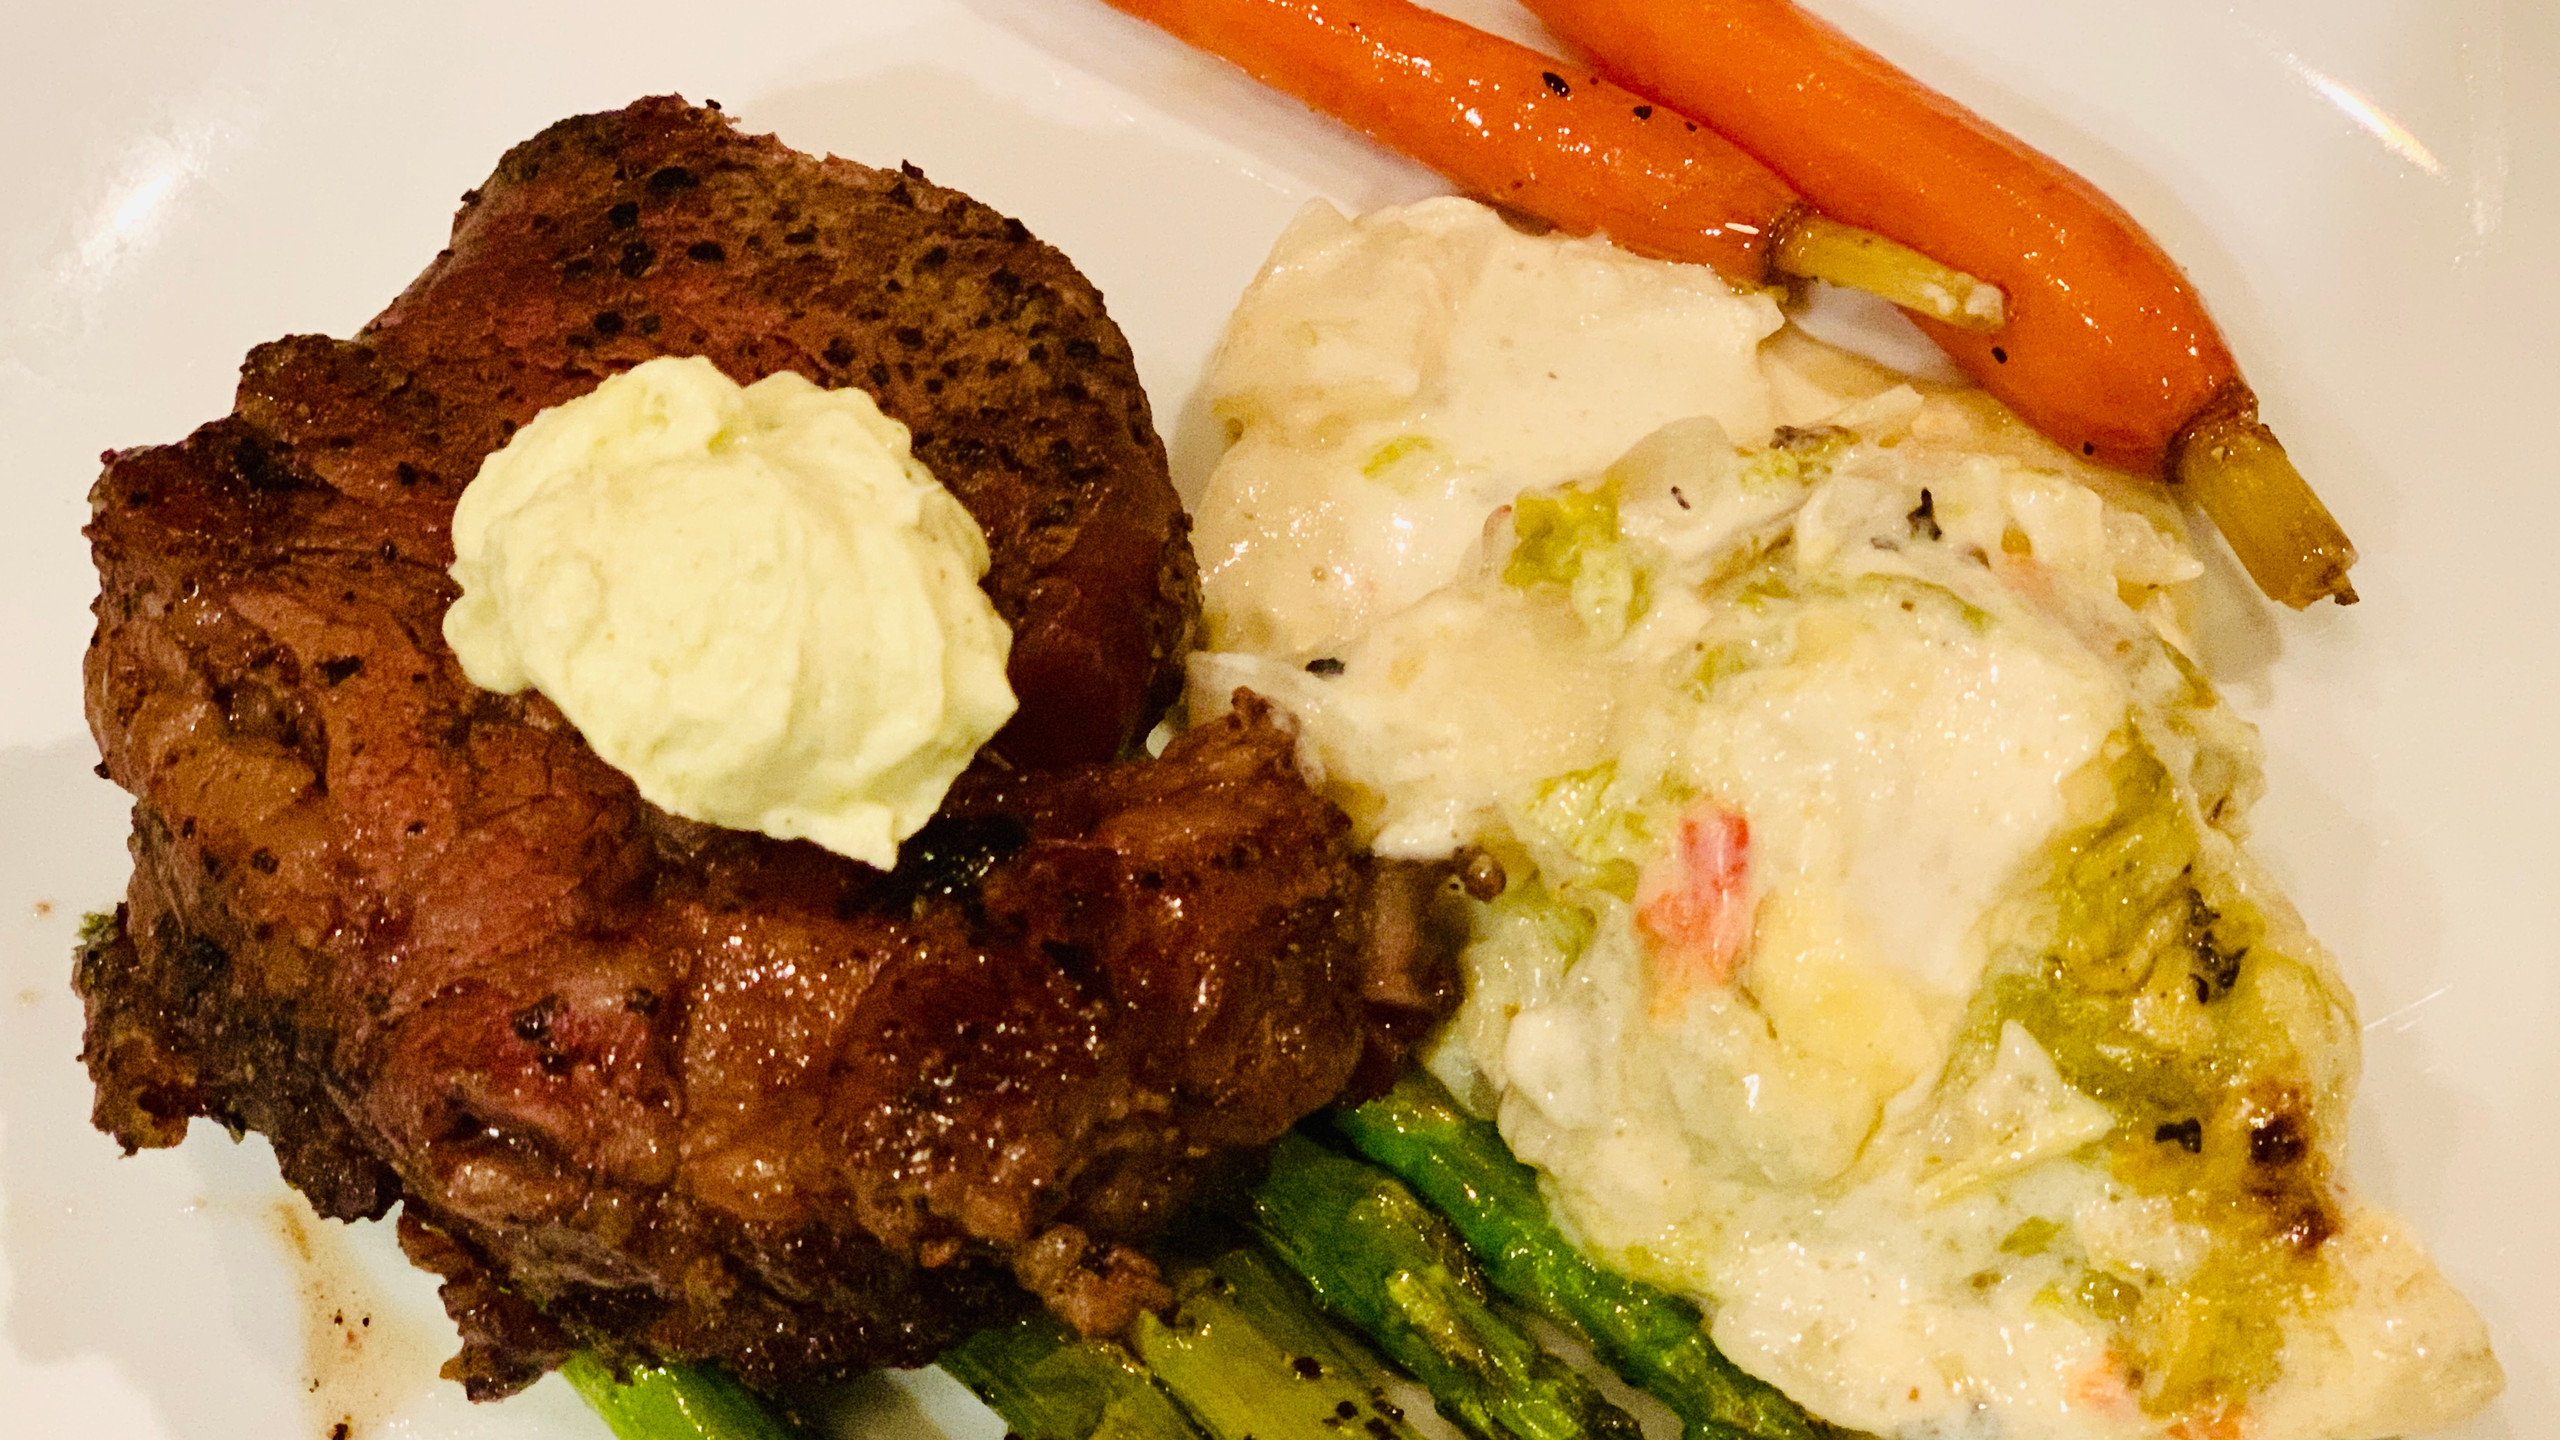 Cast Iron Pan Seared Tenderloin with a Mescal Bernaise, Potato Nest with Green Chile Cream Sauce, Agave Glazed Baby Carrots, Grilled Asparagus